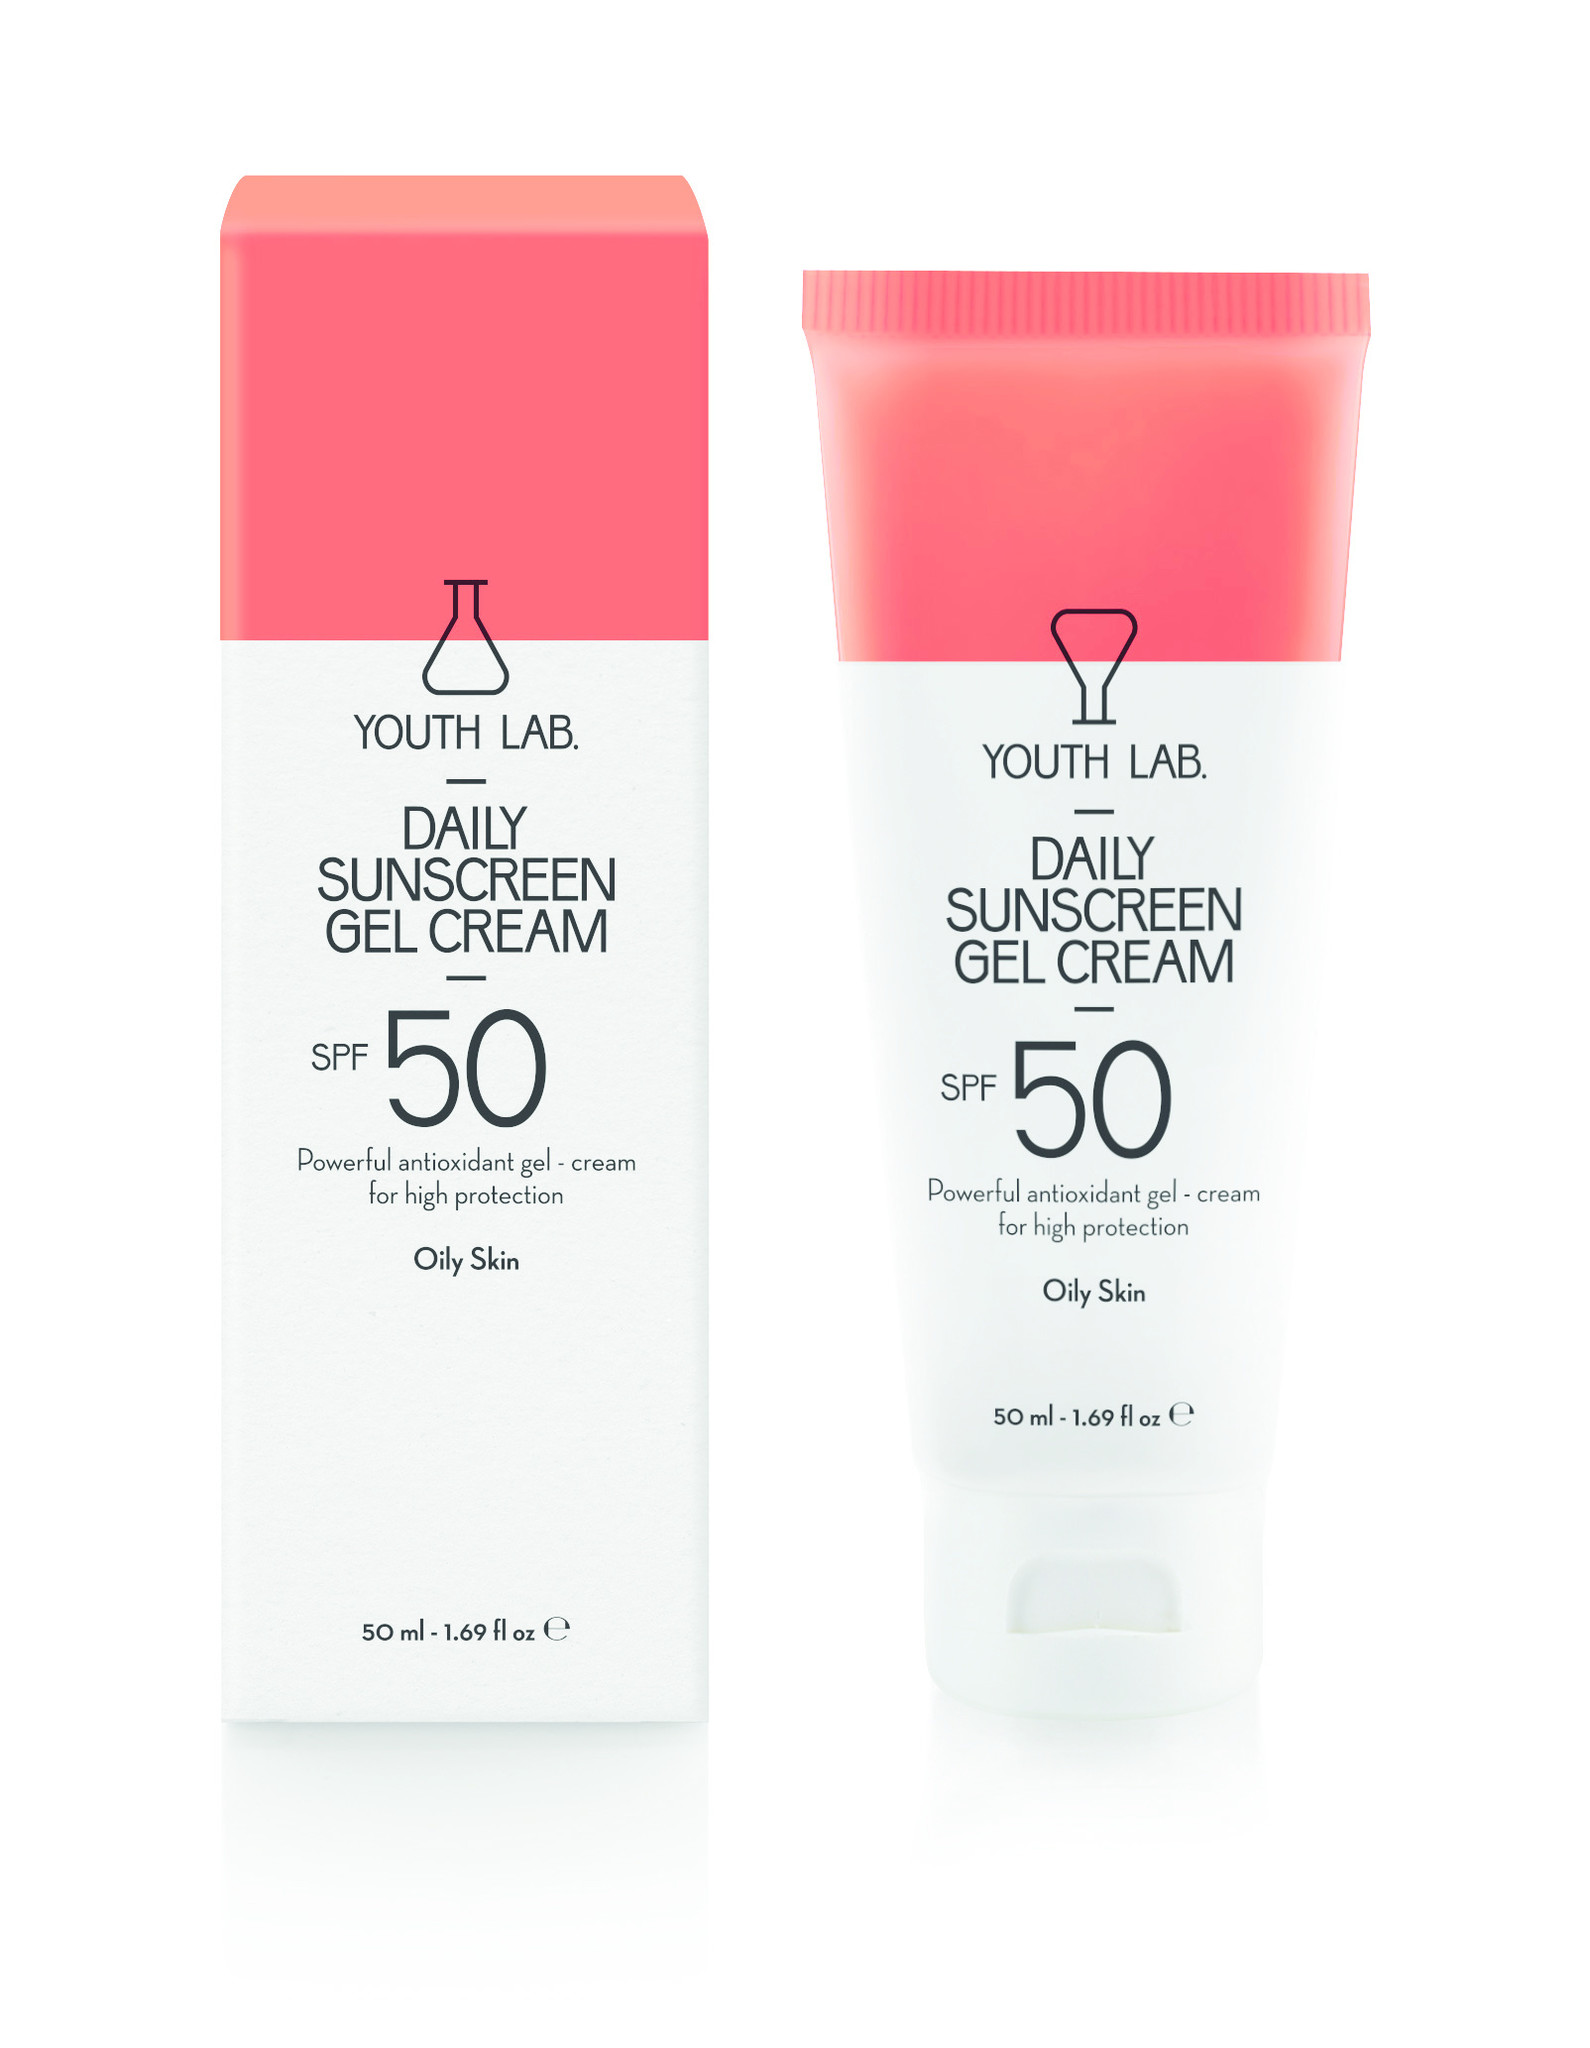 Youth Lab Youth lab Daily sunscreen gel cream spf 50 Oily skin